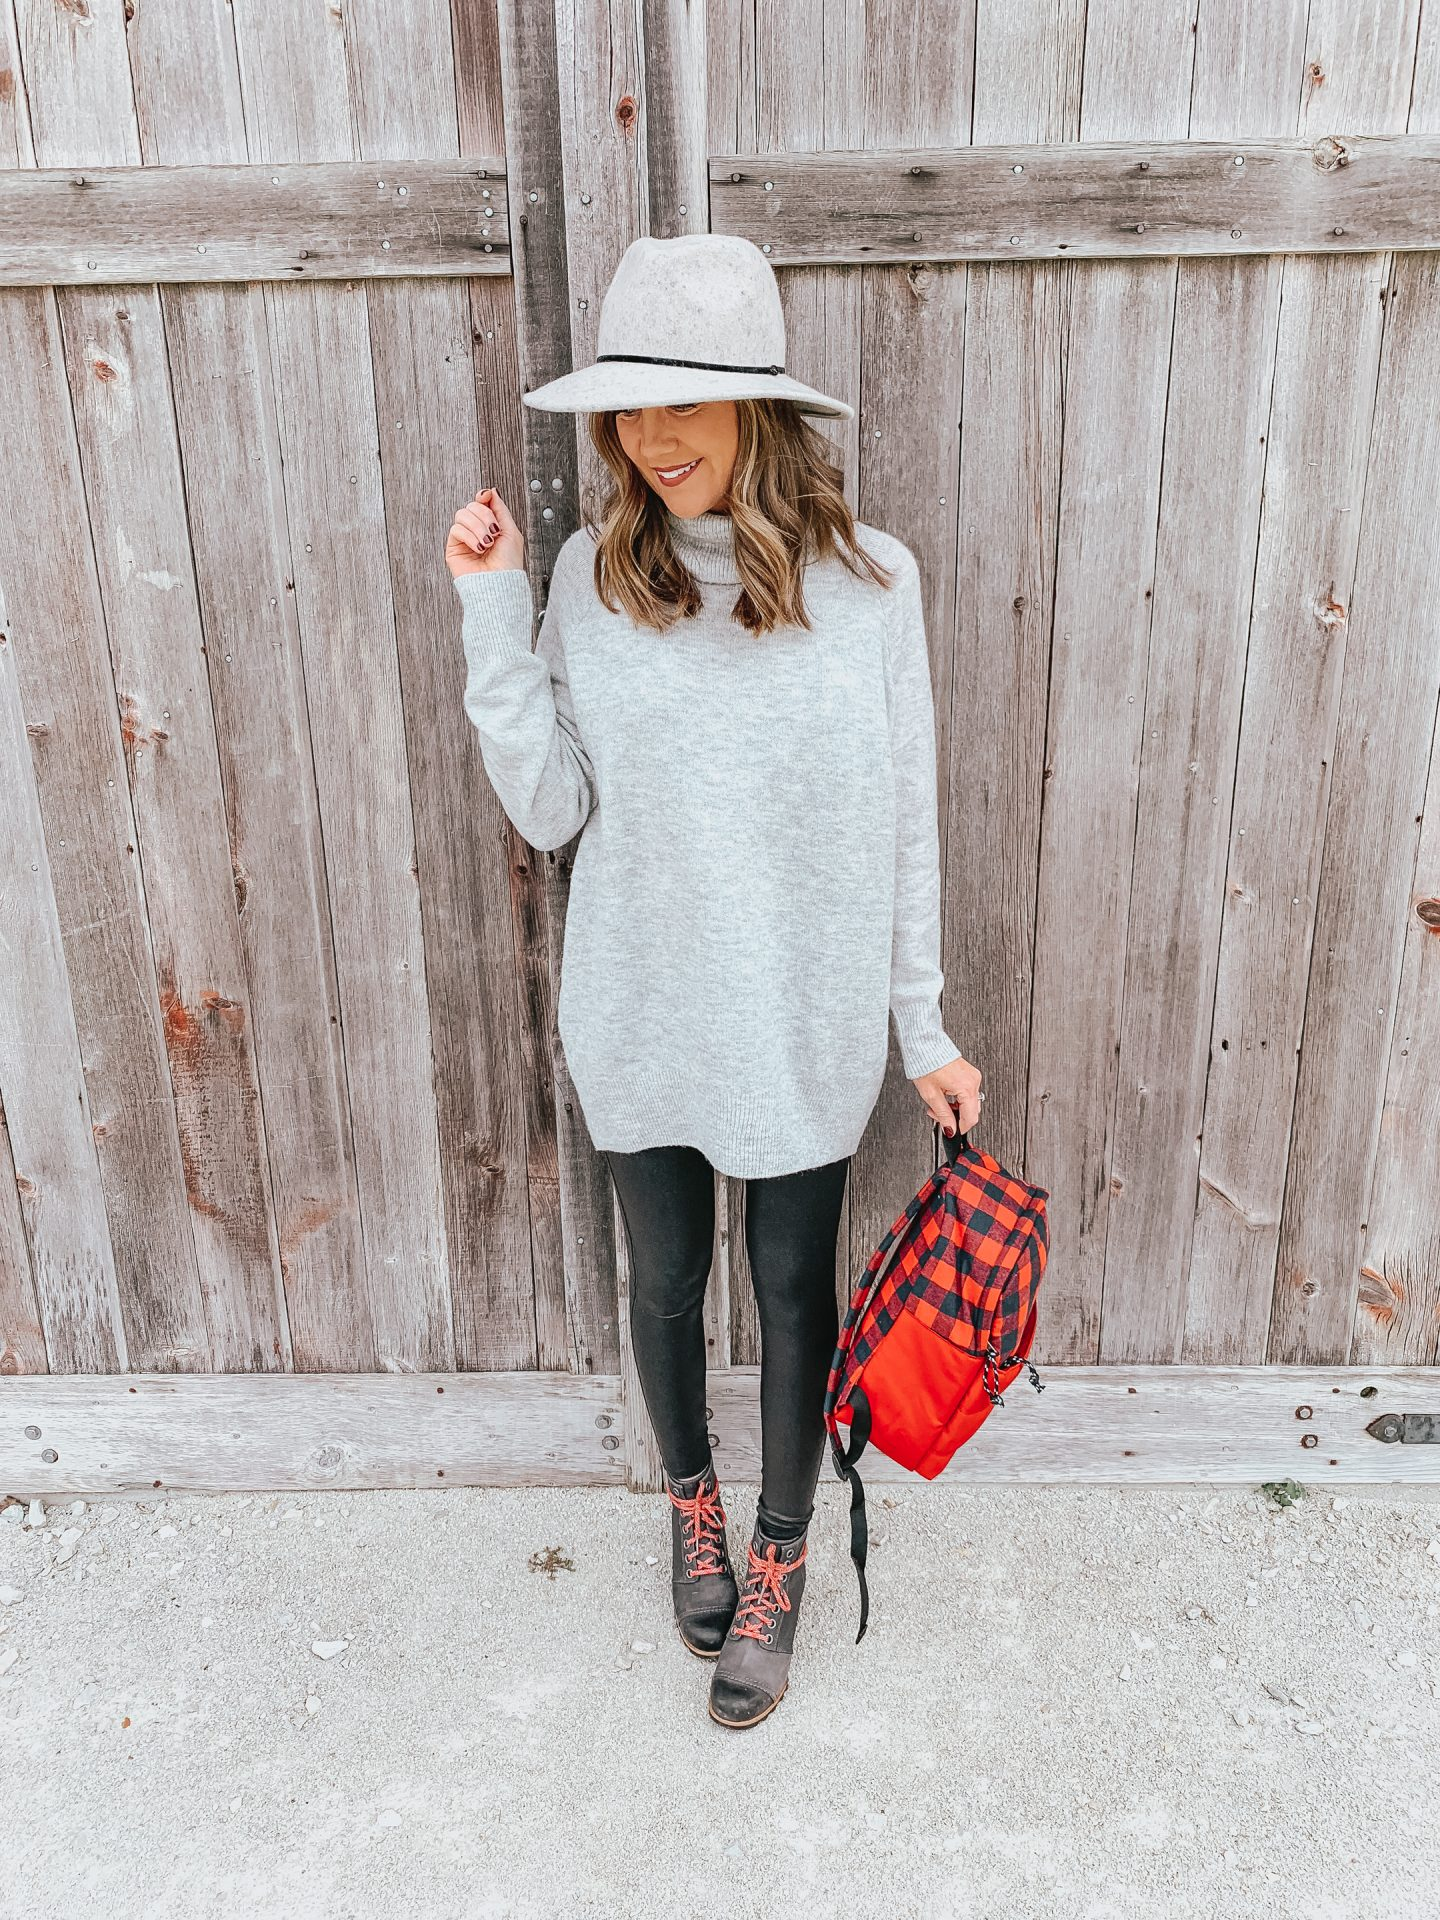 how to reduce PMS, Give Back and Give Thanks in November, end period poverty, access to period supplies, women in need, U by kotex, how to dress cute and stay warm, a cute and cozy travel outfit, faux leather leggings, tunic turtleneck sweater